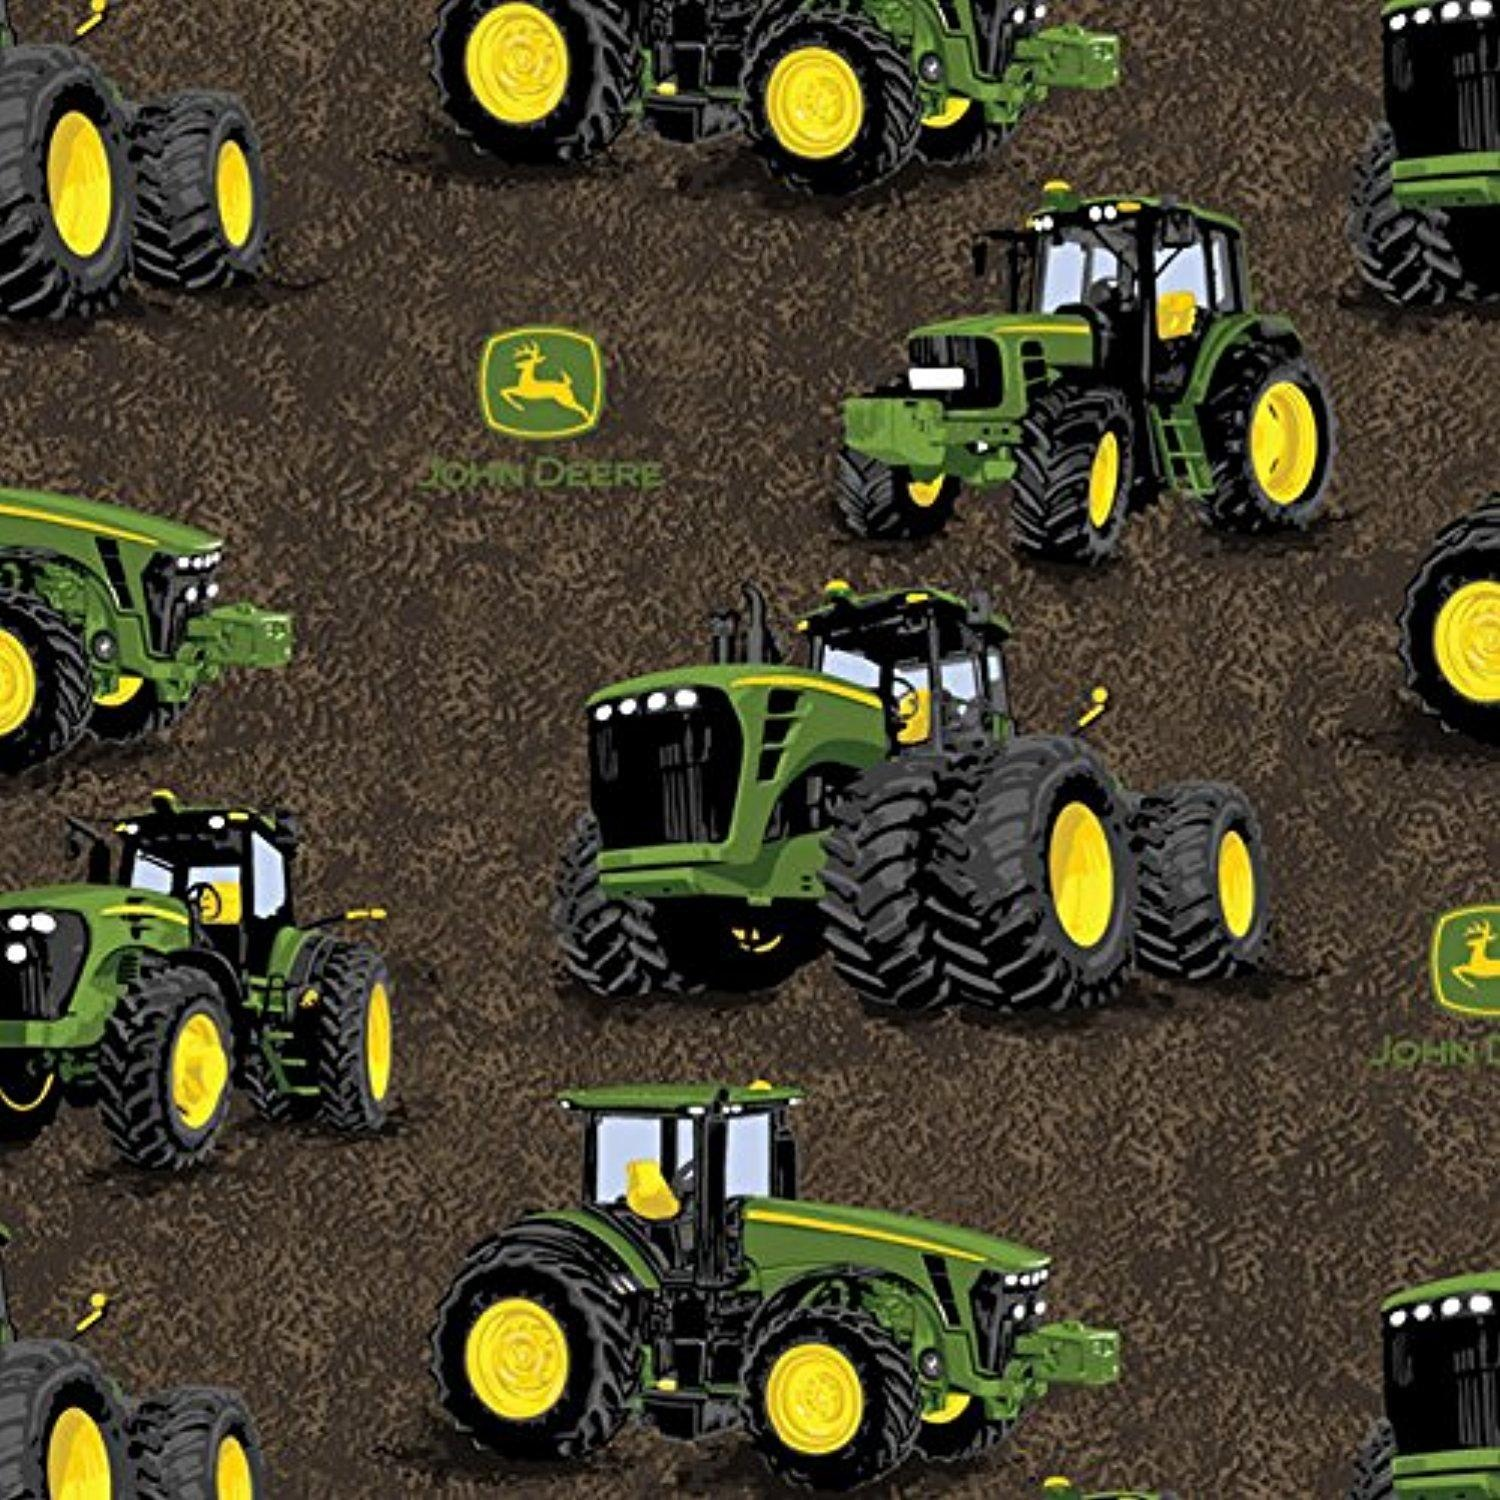 John Deere Proven Power Tractor Fabric From Springs Creative By The Yard